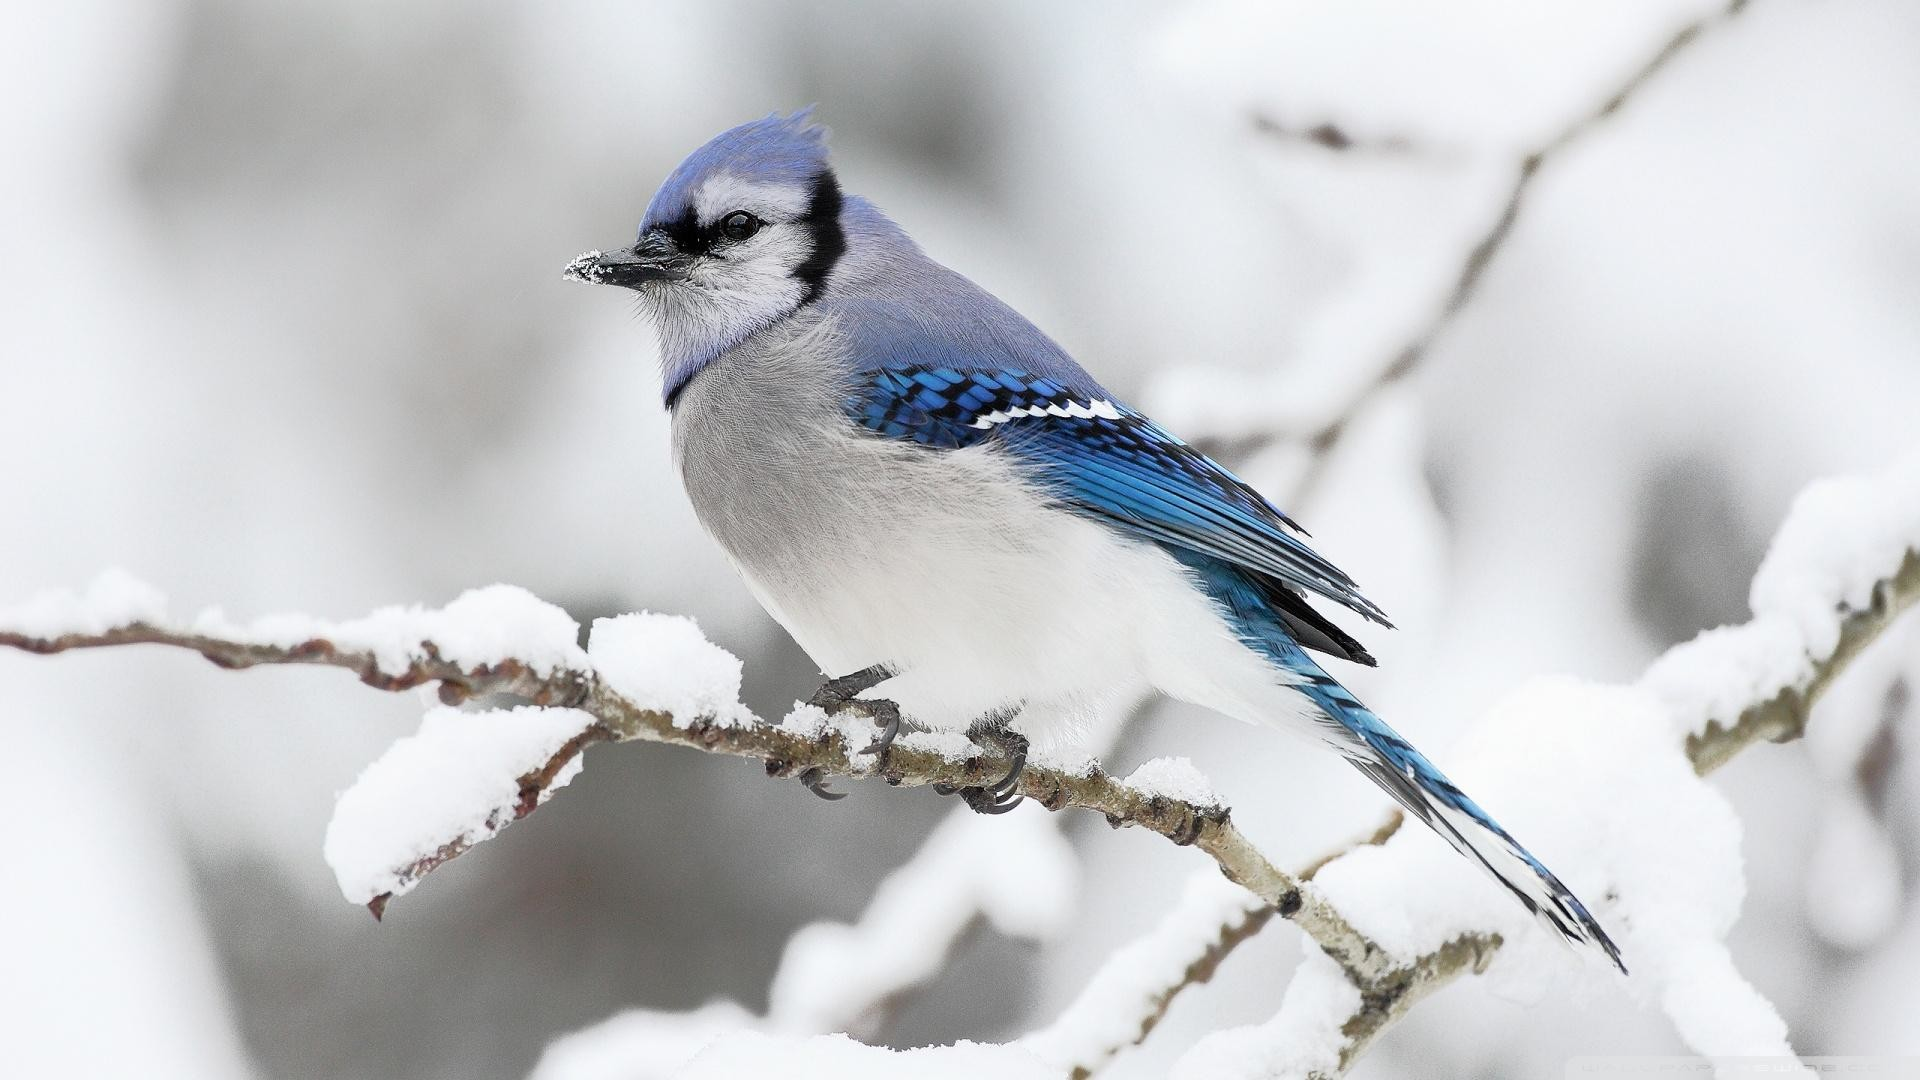 wallpaper with birds (46+ images)